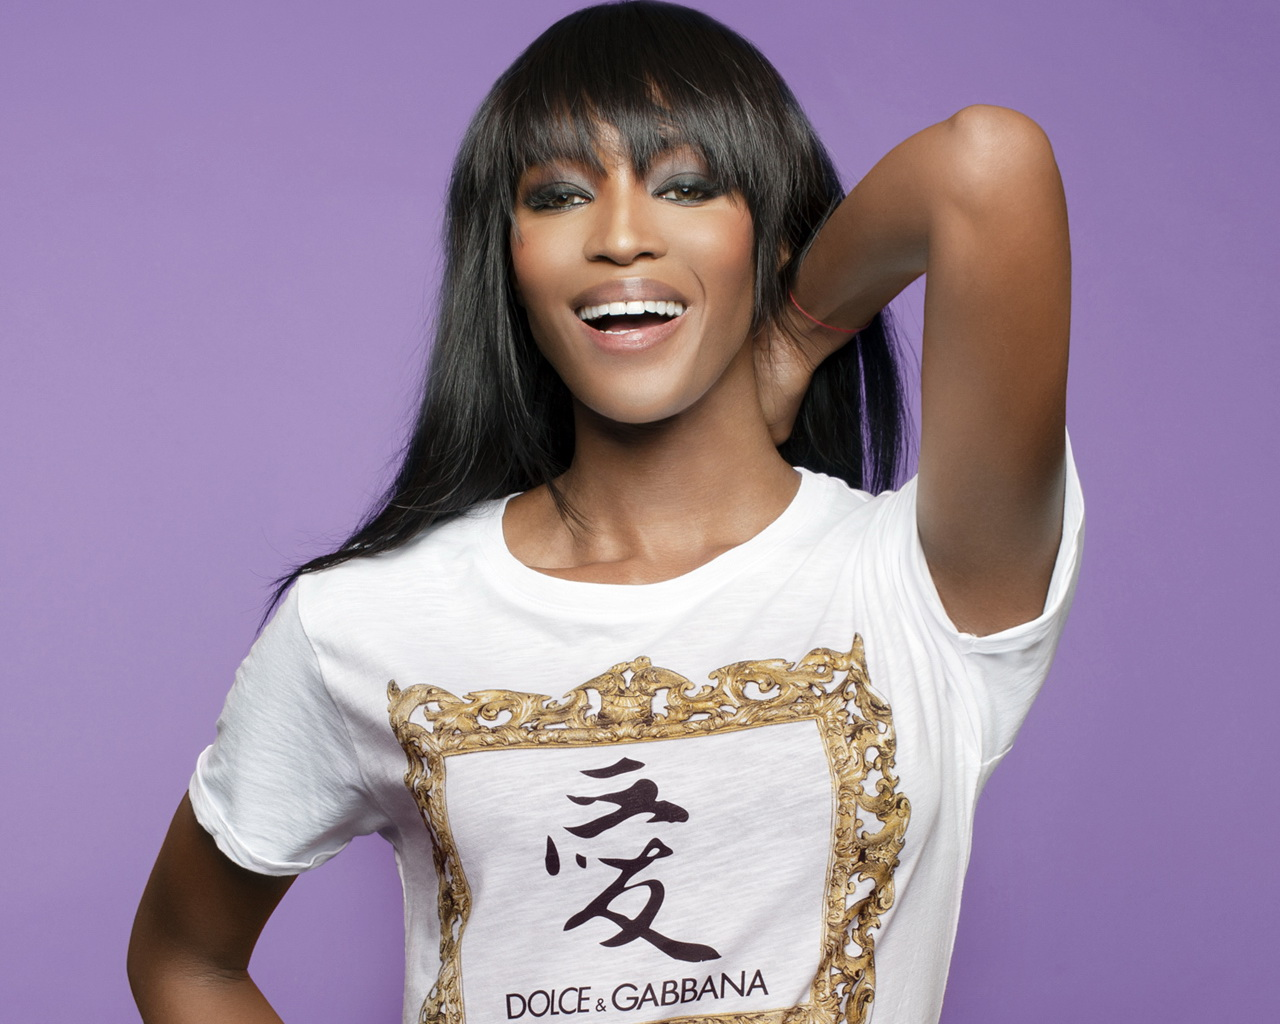 naomi campbell dolce gabanna hd wallpapers